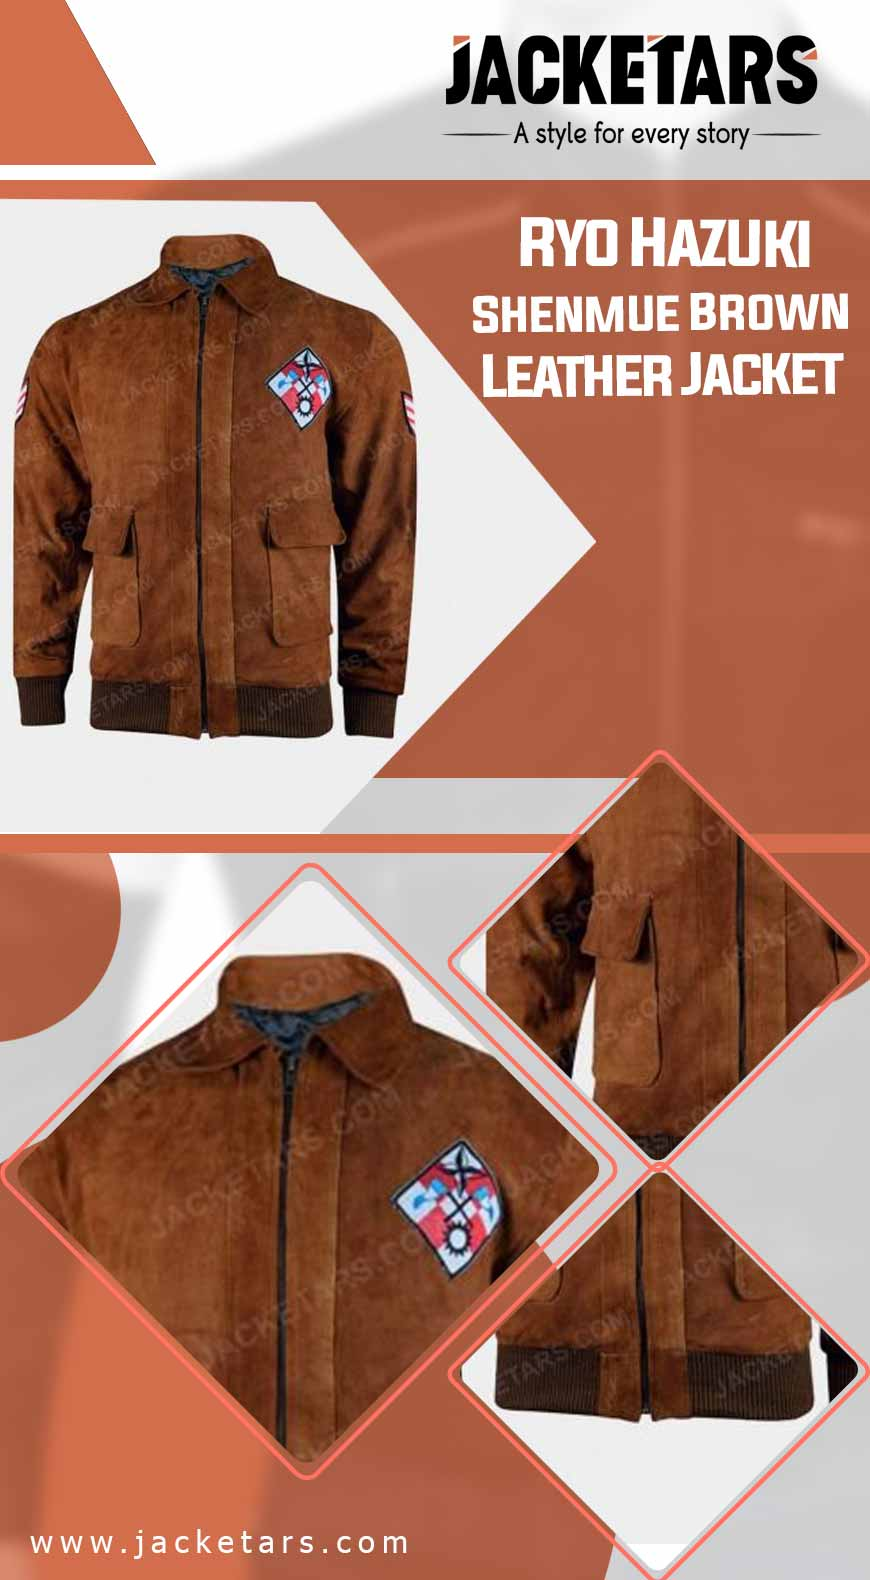 Ryo Hazuki Shenmue Brown Leather Jacket info